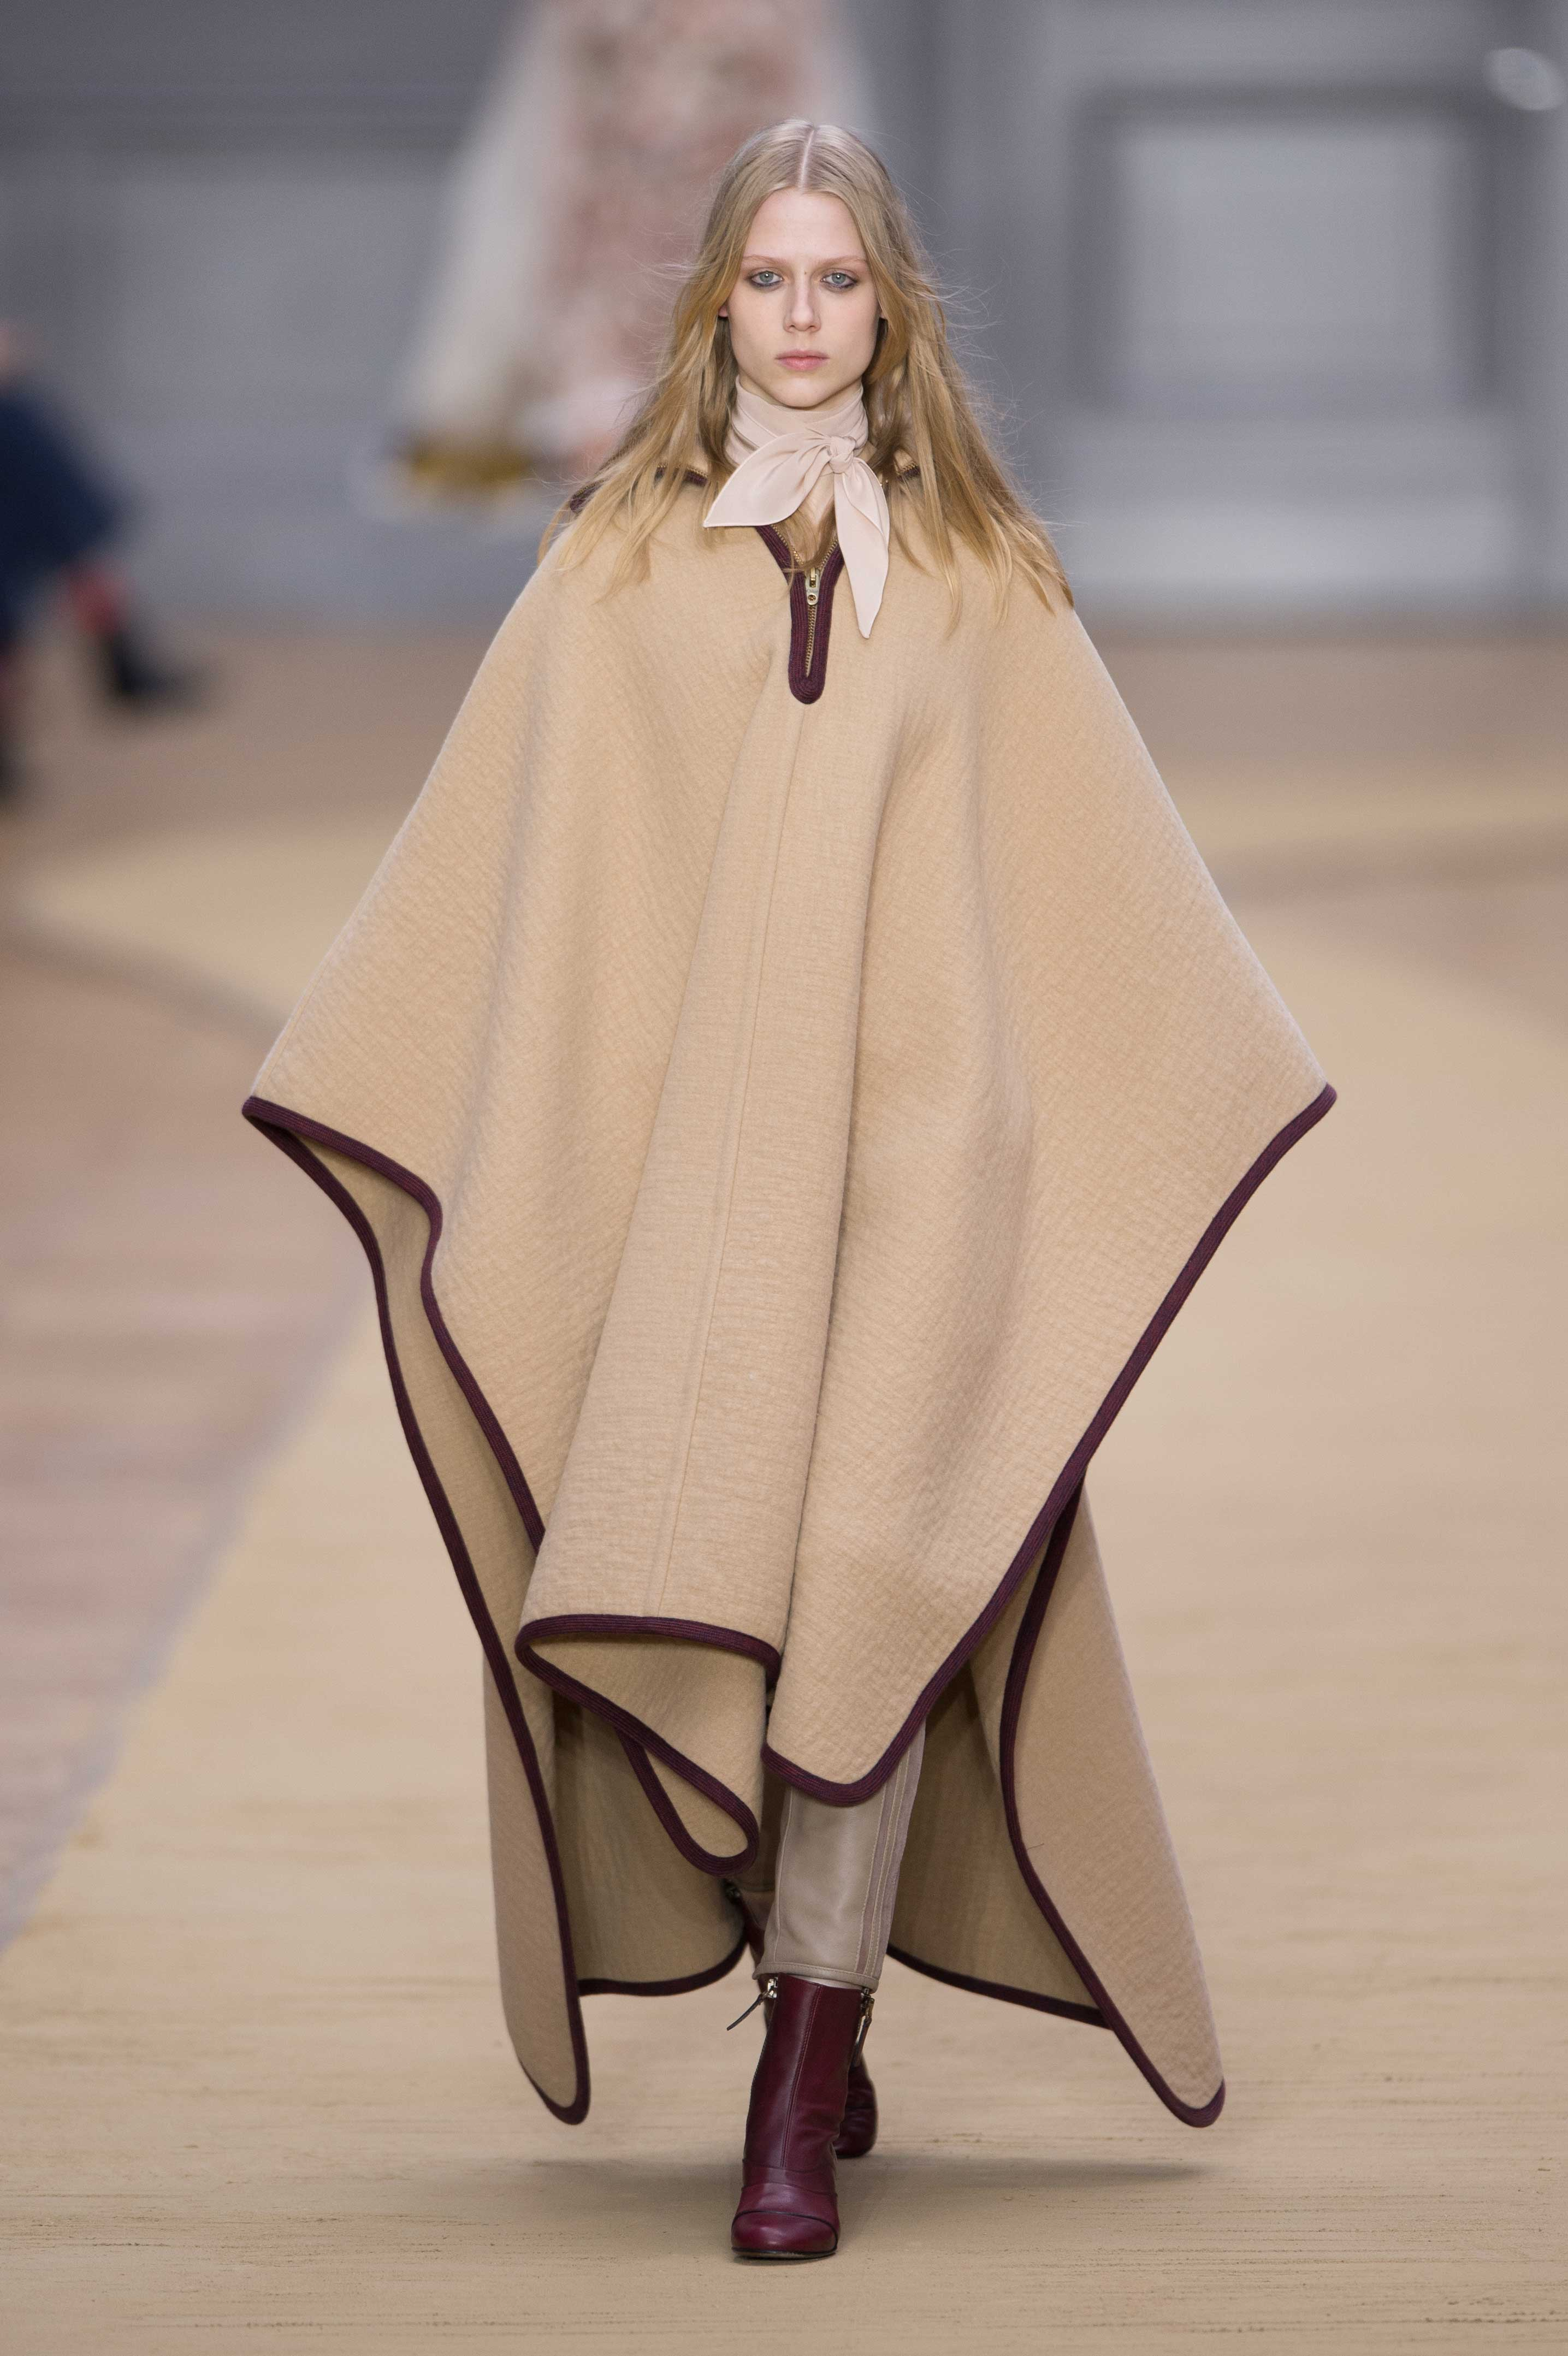 """For autumn/winter 16, Chloé designer Clare Waight Keller was inspired by Anne-France Dautheville, a French woman who travelled through Europe and the Middle East on a motorbike in the seventies. """"She had this incredibly inspiring attitude, her sense of daring,"""" Waight Keller told WWD. """"She was chic and boyish at the same time. I found something really charismatic about her."""""""